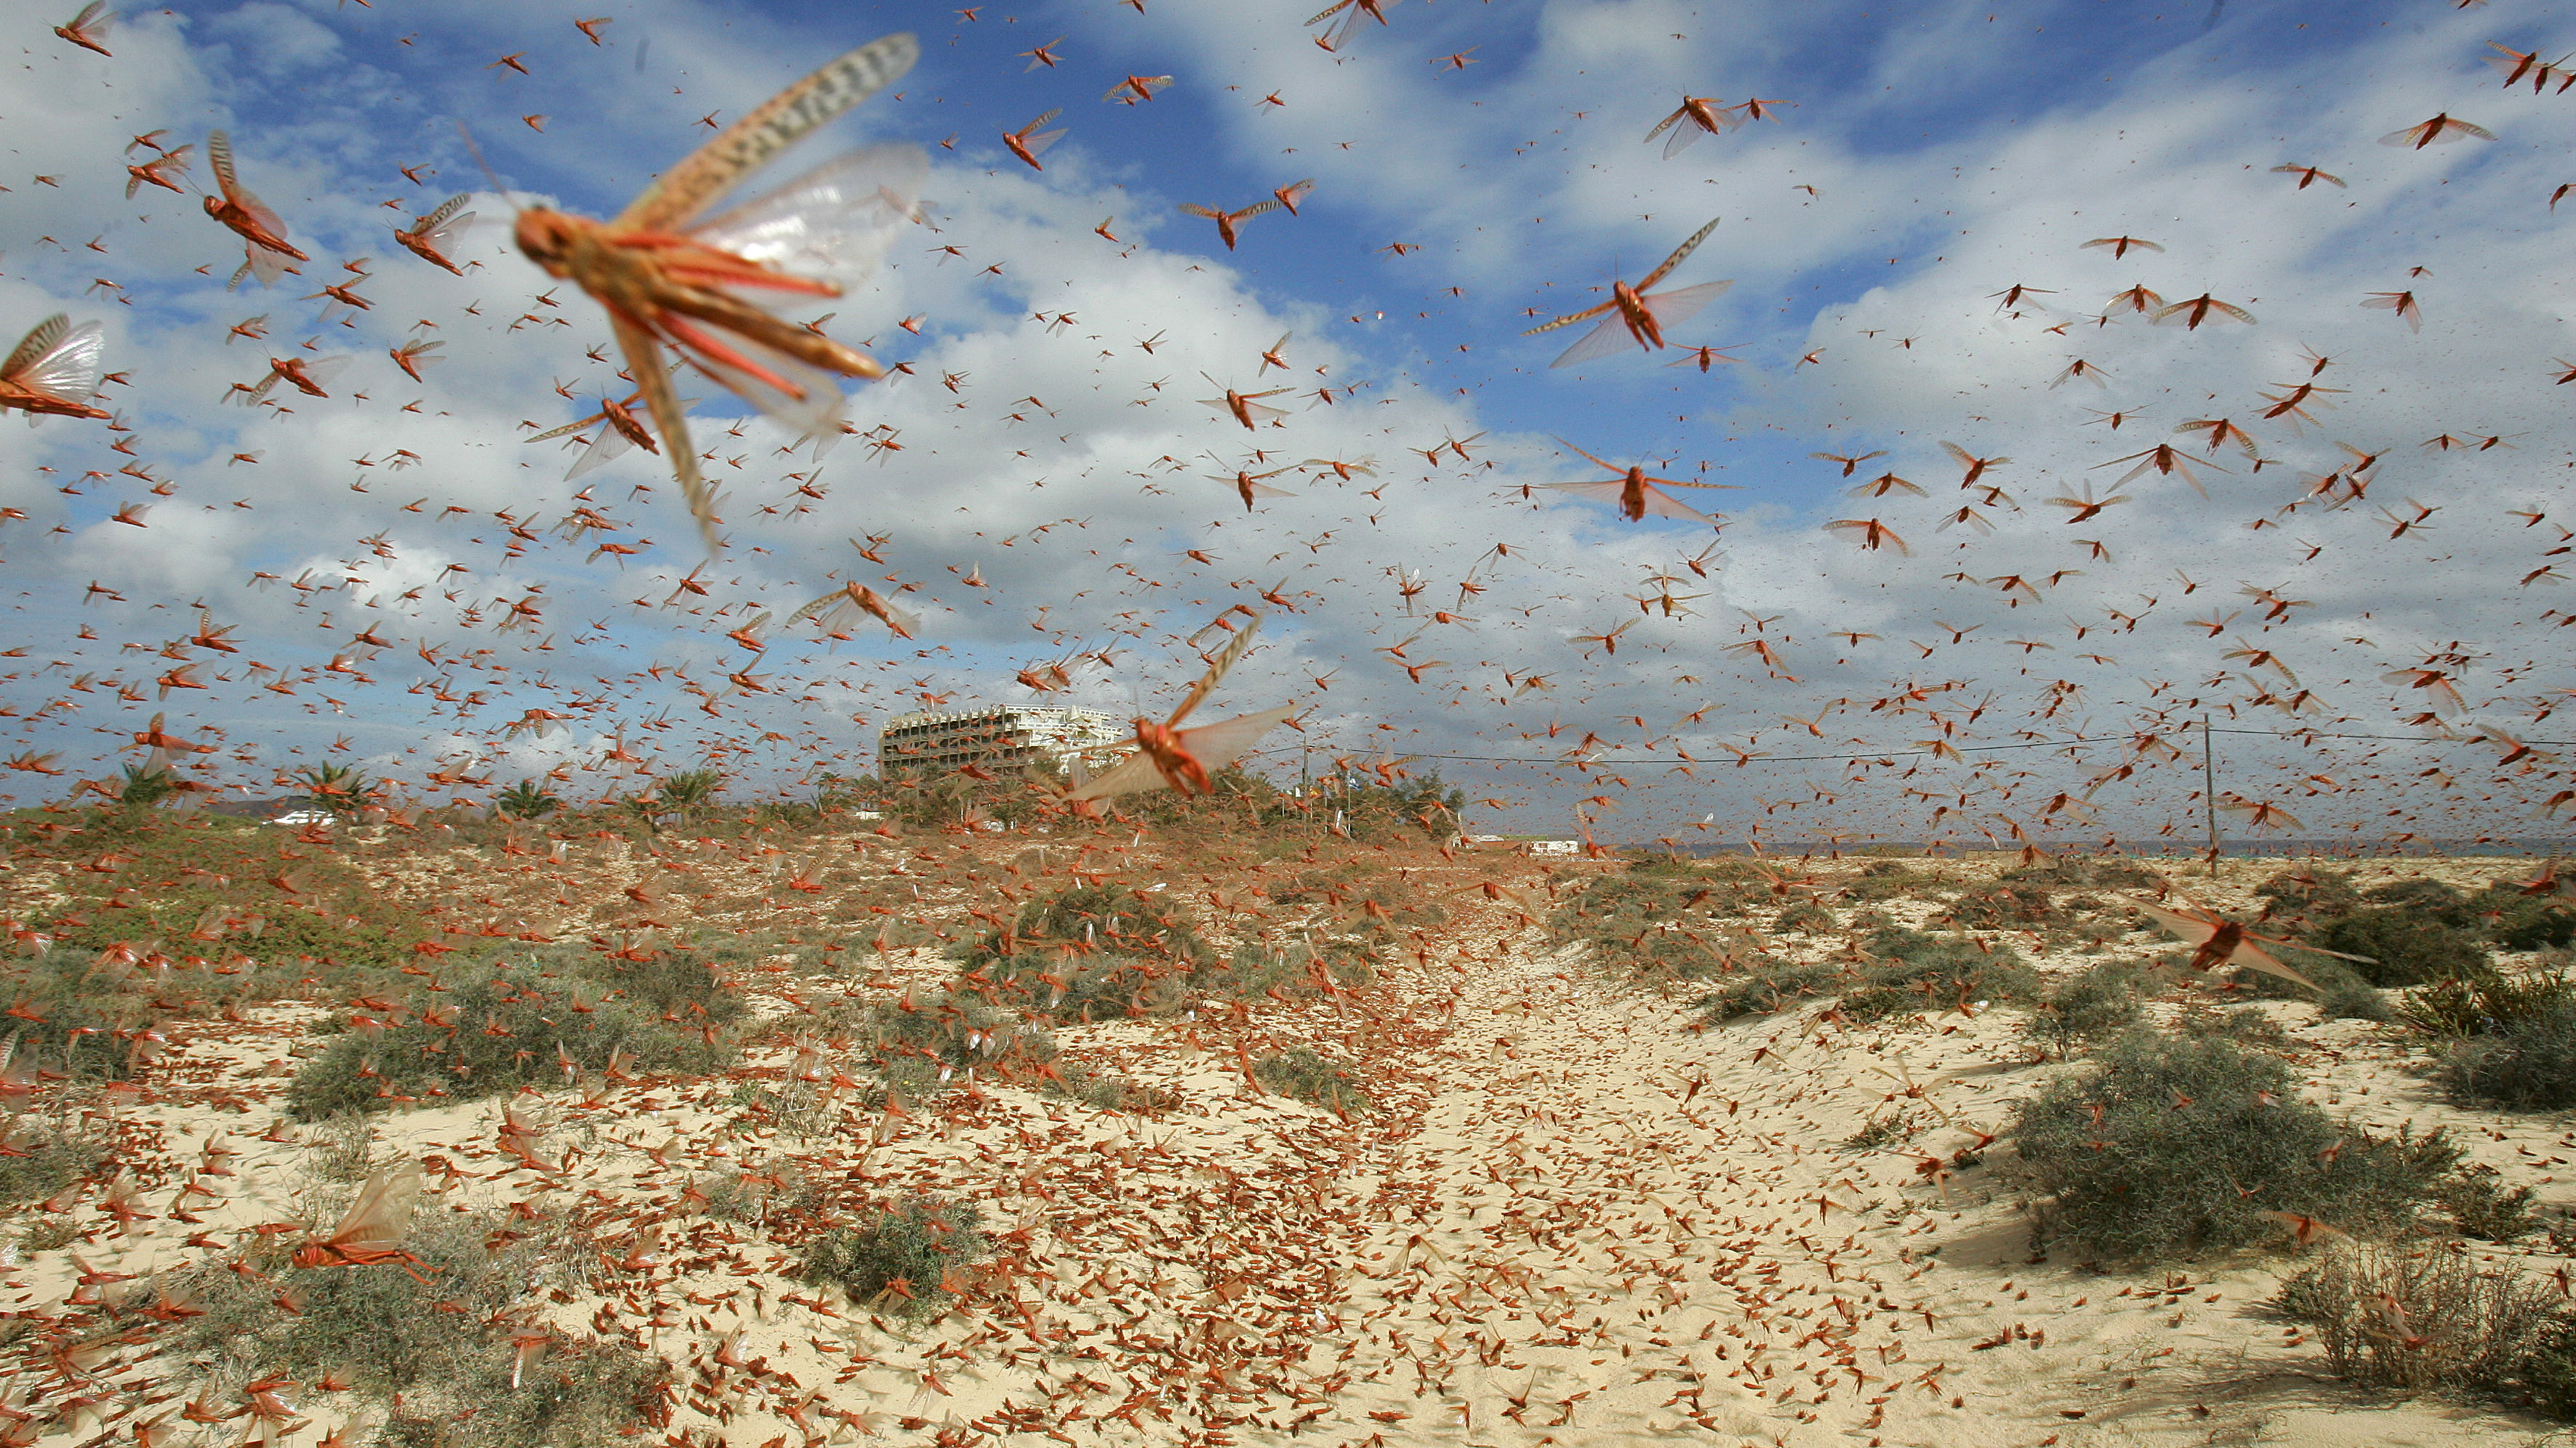 A swarm of pink locusts flies on a beach near Corralejo, on the Spanish Canary Island of Fuerteventura, November 29, 2004. Authorities in the Canaries have issued an alert as swarms of locusts arrived over the weekend from western Africa, with environmental experts estimating that some 100 million of the insects have reached the Canaries. Aid agencies claim that the locusts have destroyed up to a third of the crop in African countries affected by the locust plague. NO RIGHTS CLEARANCES OR PERMISSIONS ARE REQUIRED FOR THIS IMAGE.